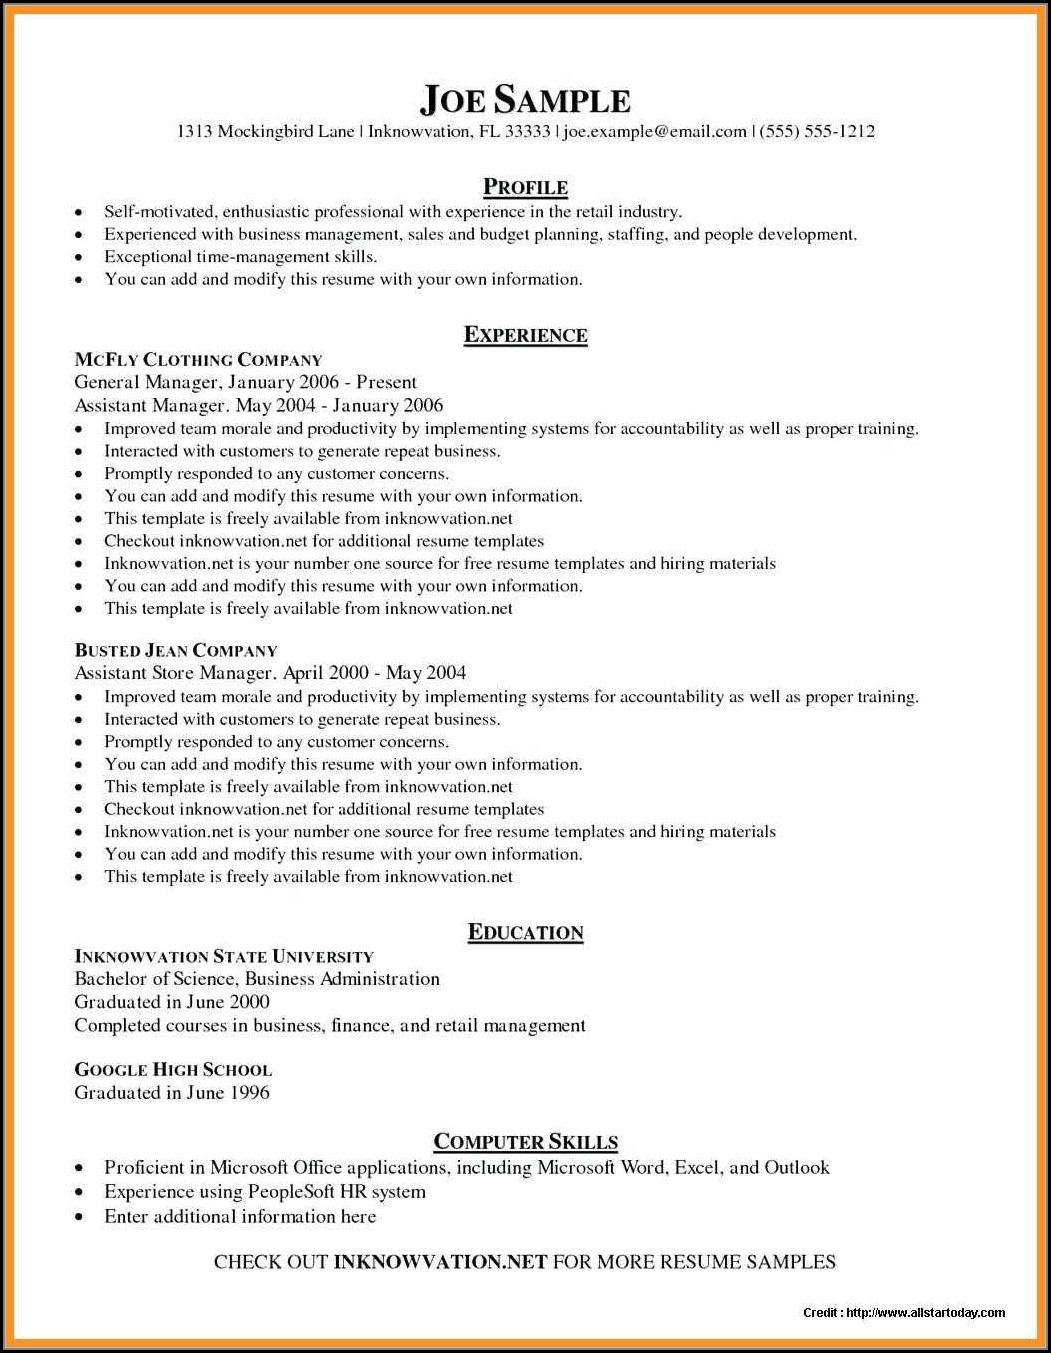 Resume Wizard Free Download